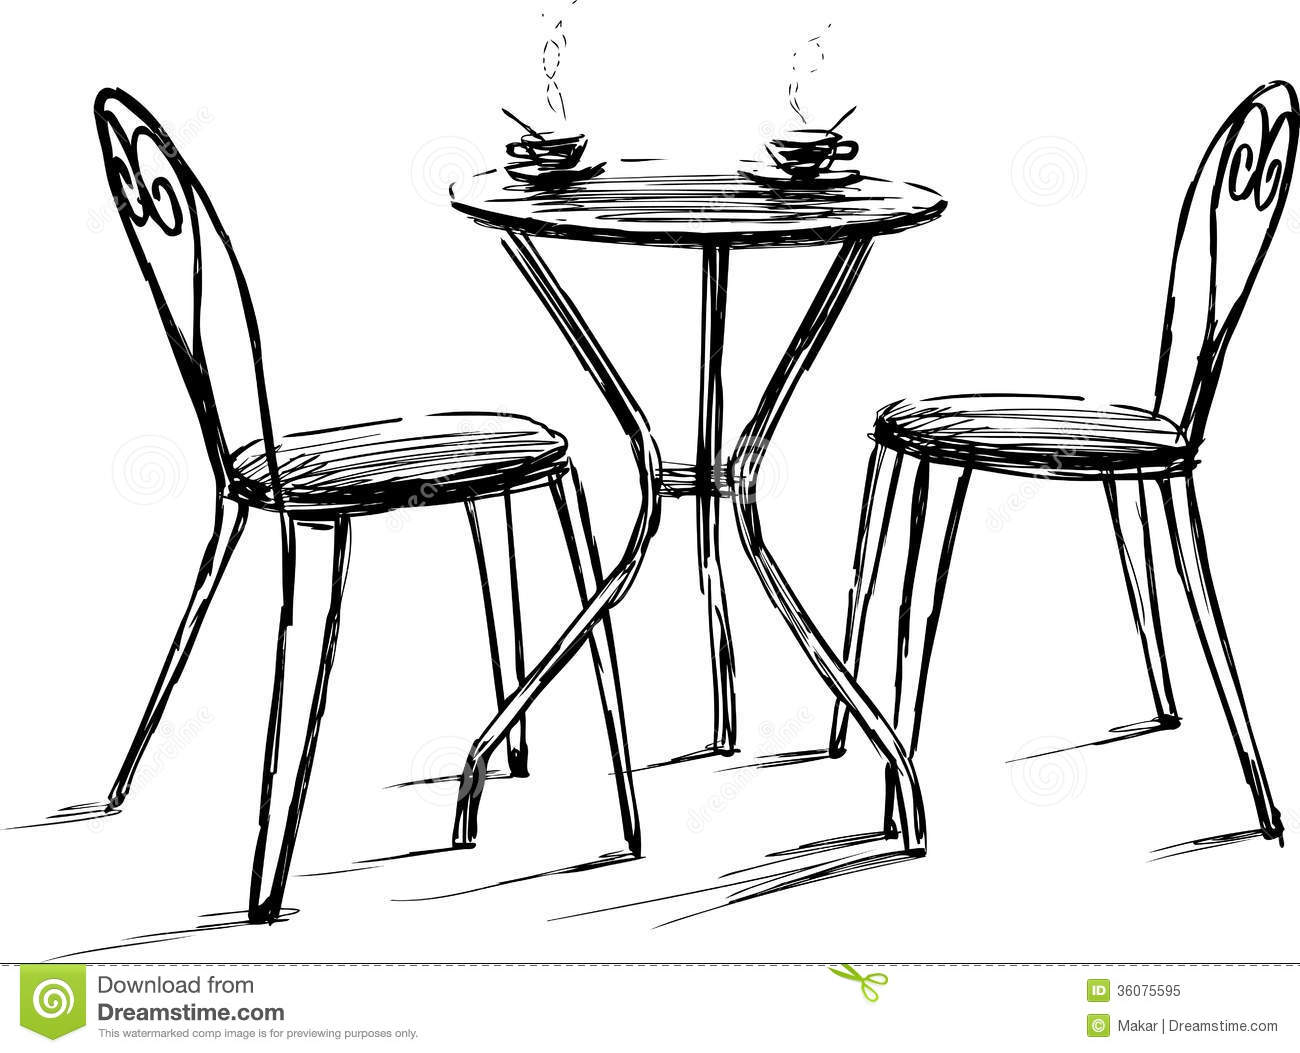 Plan table and chairs vector images free floor